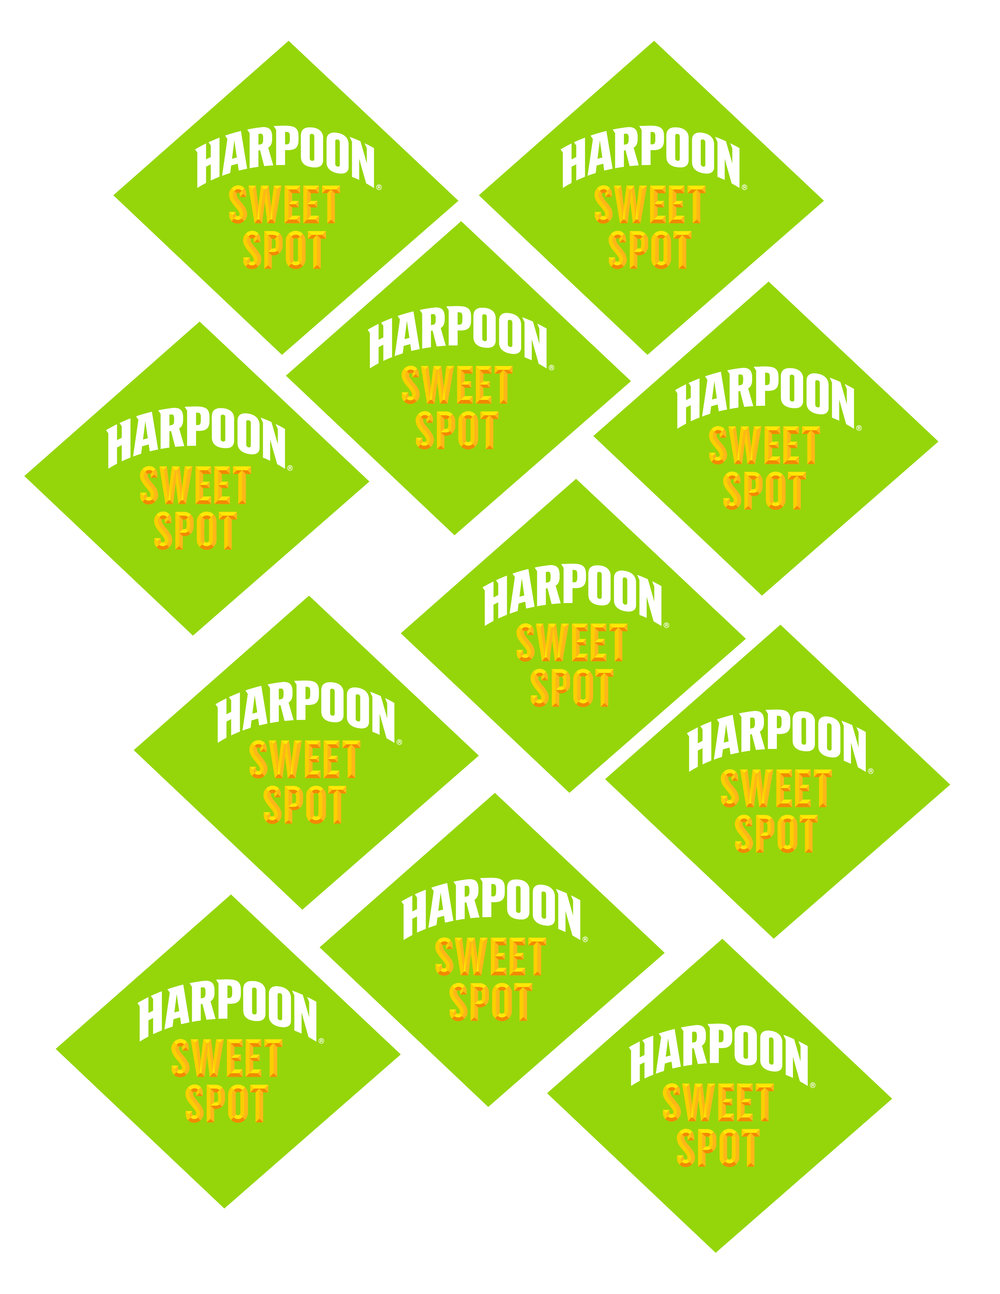 harpoon-sweetspot-diamondsheet.jpg